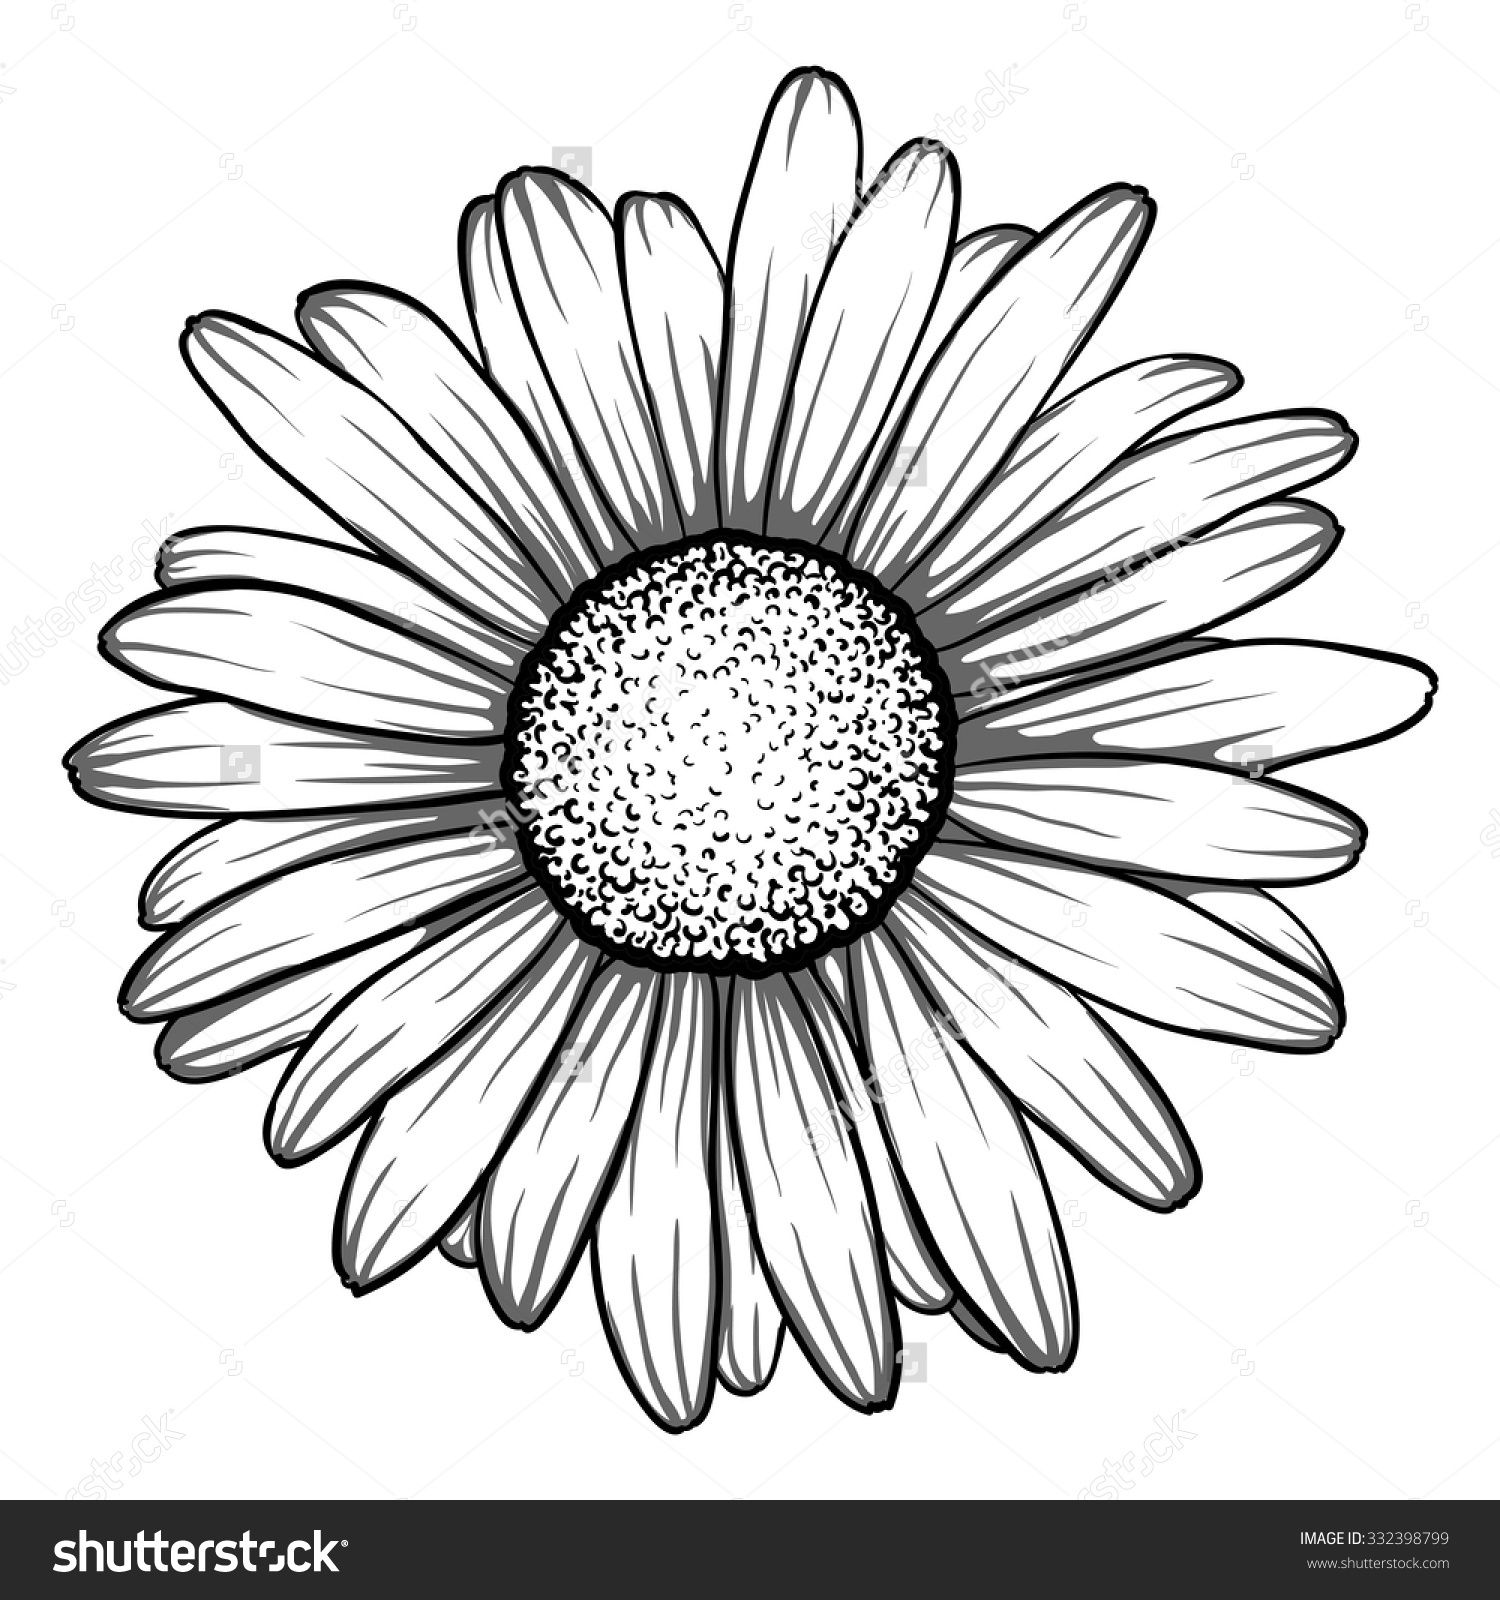 Daisy Tattoo Outline: Beautiful Monochrome, Black And White Daisy Flower